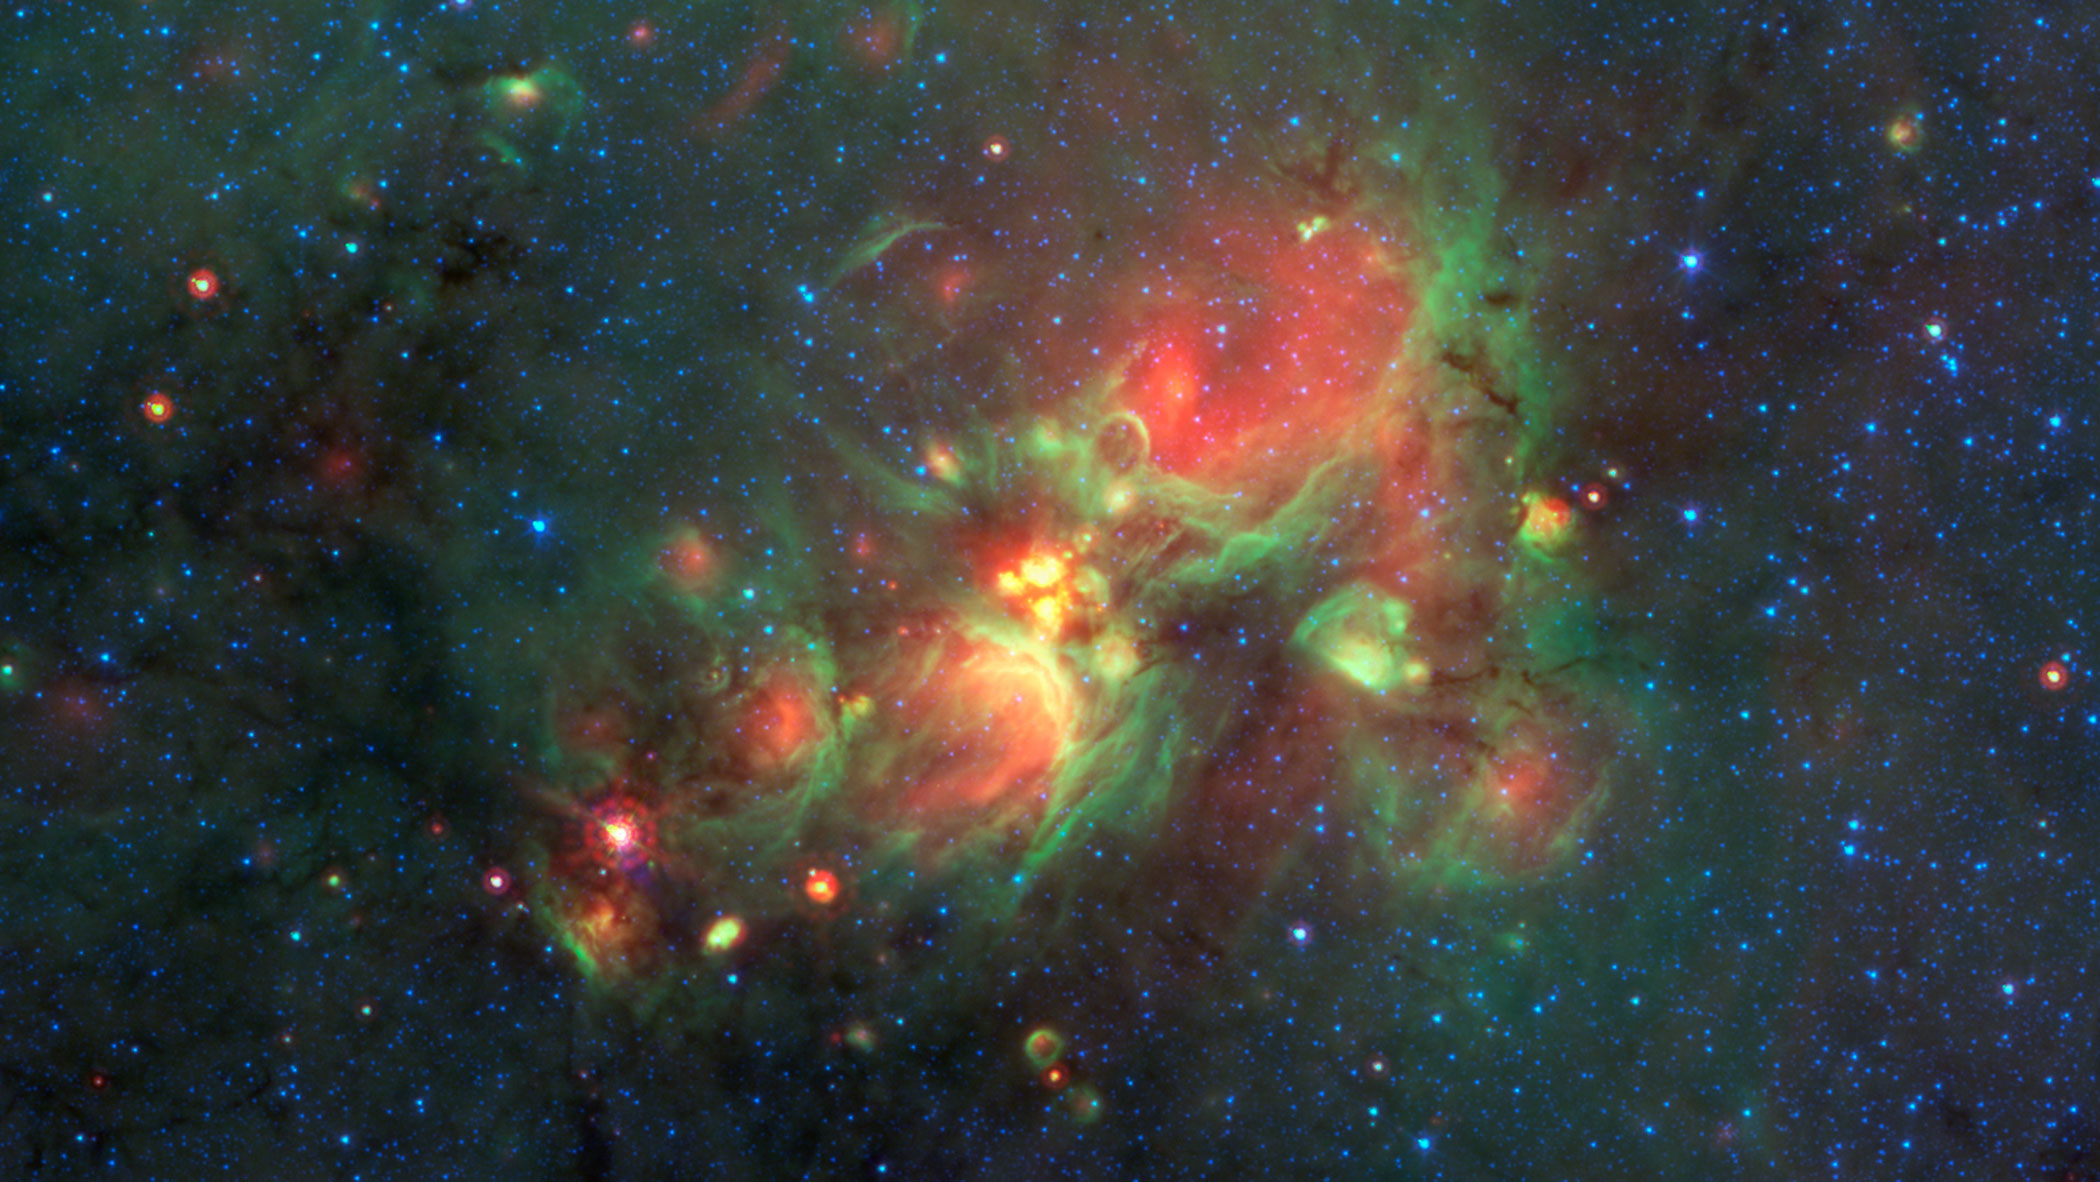 Volunteers using the web-based Milky Way Project brought star-forming features nicknamed  yellowballs  to the attention of researchers, who later showed that they are a phase of massive star formation. The yellow balls -- which are several hundred to thousands times the size of our solar system -- are pictured here in the center of this image of the W33 Star forming region taken by NASA's Spitzer Space Telescope, released on Jan. 27, 2015.